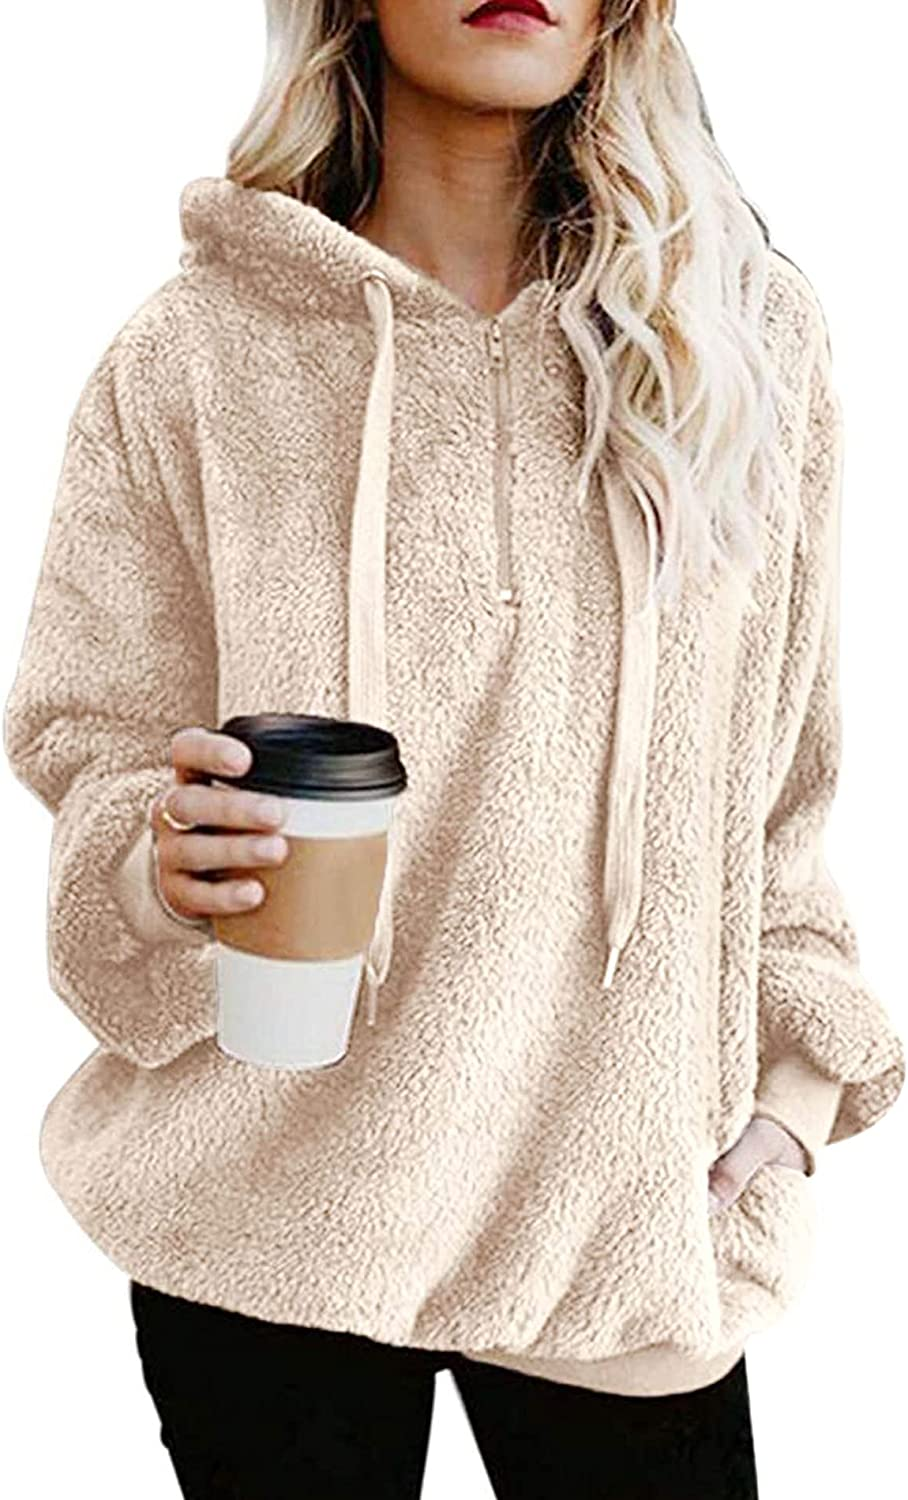 Hoodies for ! Super beauty product restock quality top! Women Athletic Oversized Sweat New Free Shipping Hoodie Fuzzy Pullover